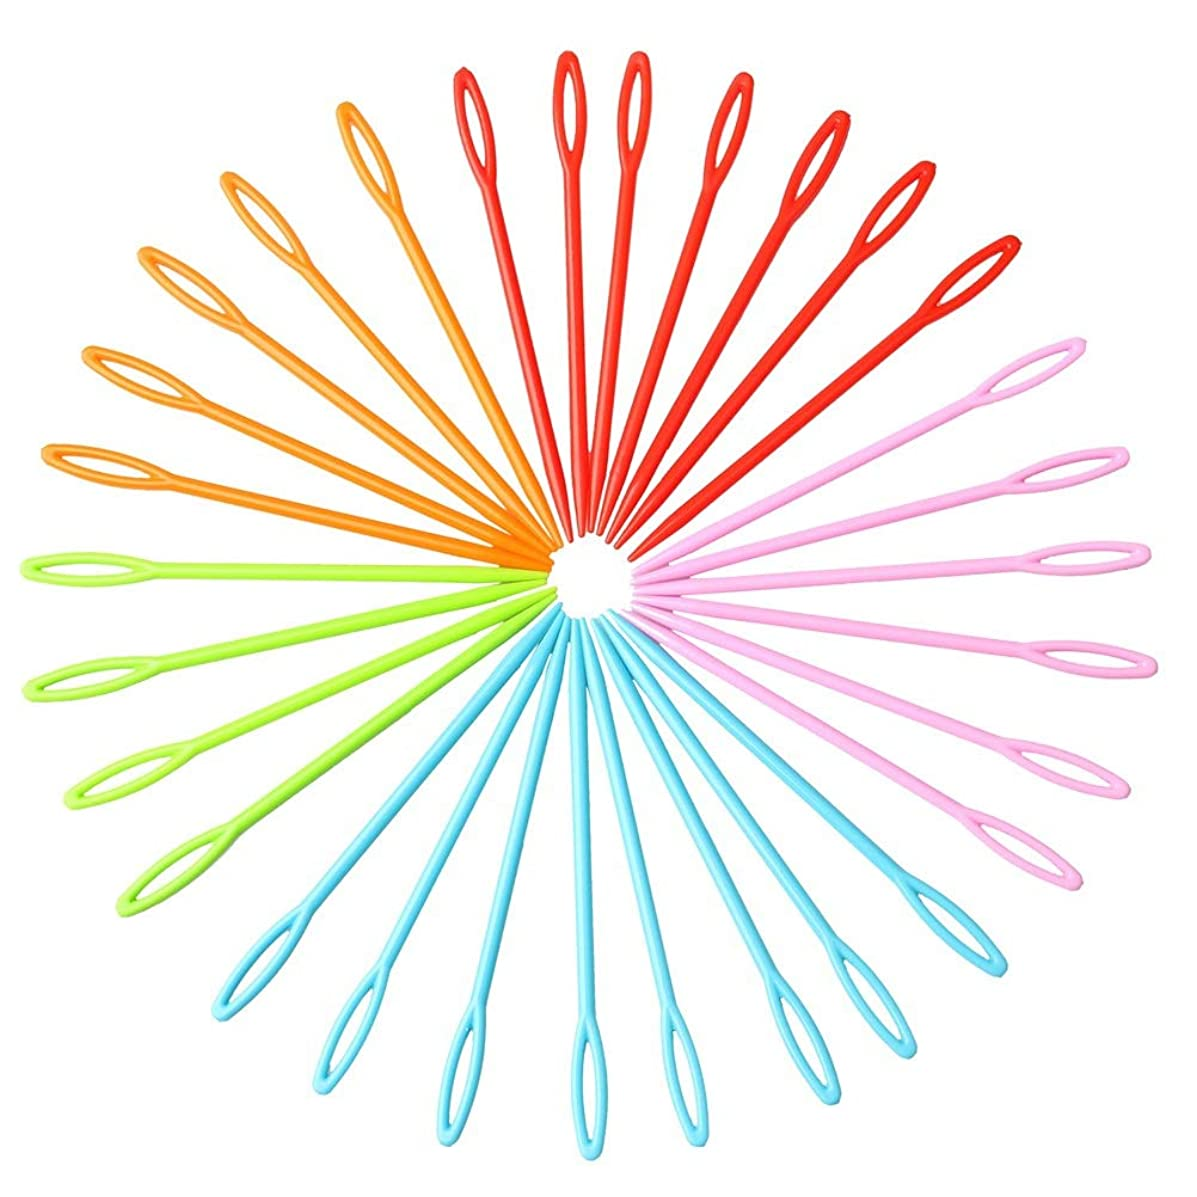 30 Pieces Colorful Plastic Sewing Needles, Color Scissor Sewing Needles Safety Plastic Lacing Needles For Crafts